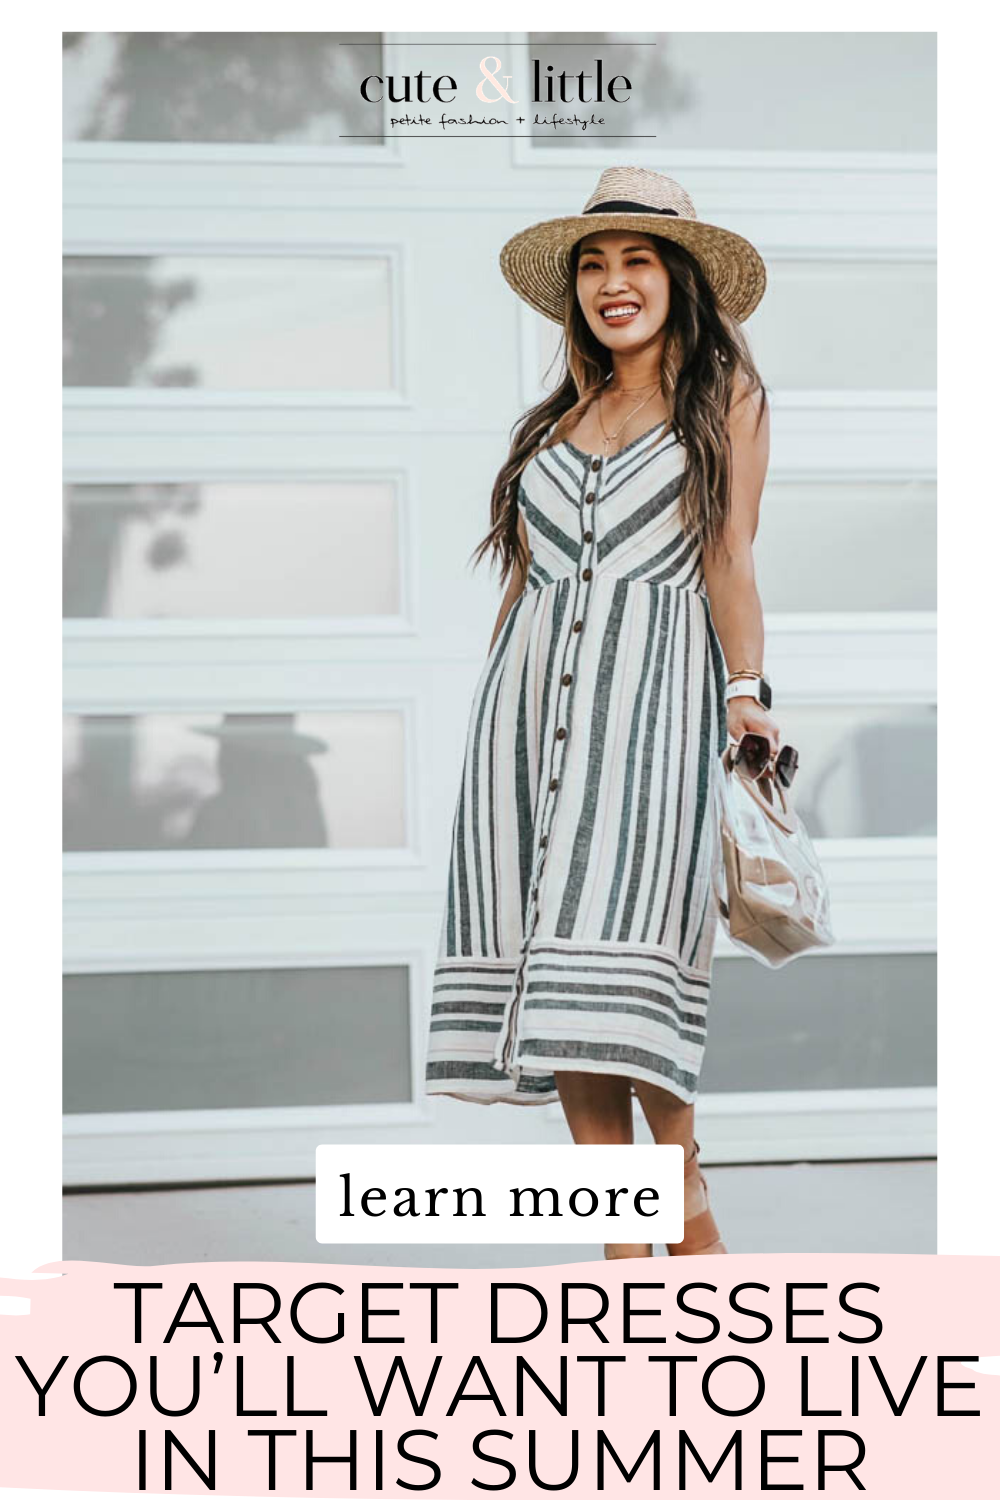 Target Summer Dresses Dallas Petite Fashion Cute And Little In 2021 Casual Summer Dresses Sundresses Summer Dresses Summer Dresses Sundresses [ 1500 x 1000 Pixel ]